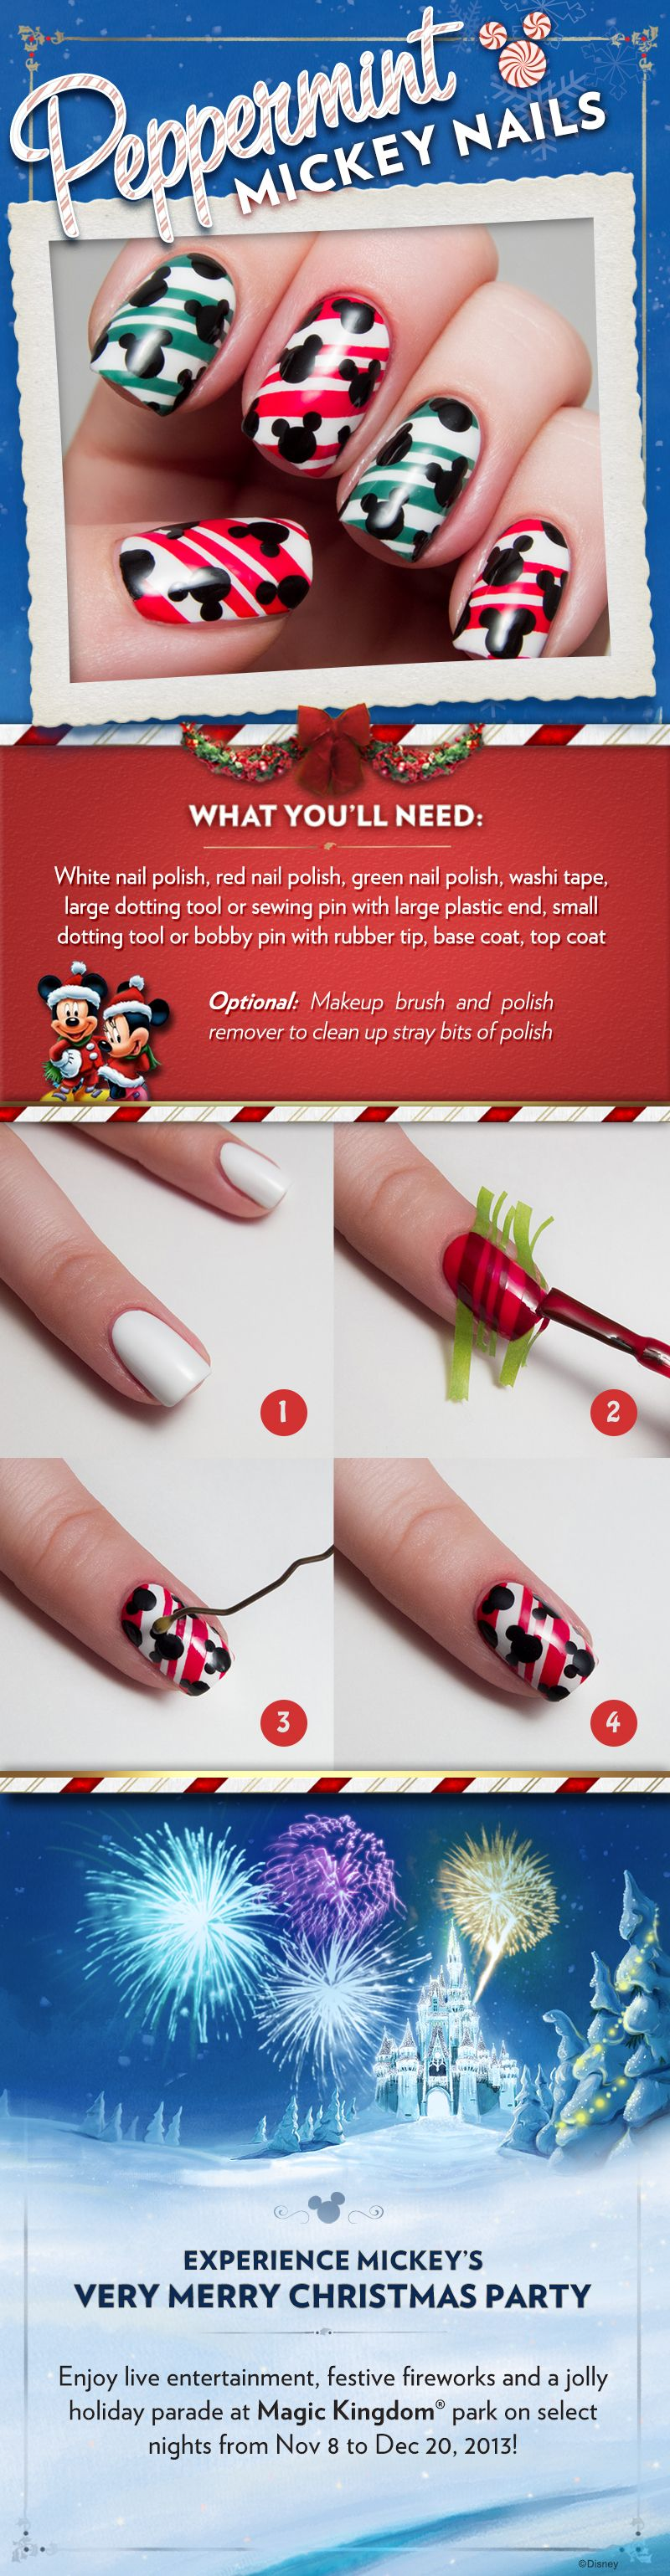 Pepperming Mickey Nails #DIY #Tutorial #WaltDisneyWorld #Christmas ...